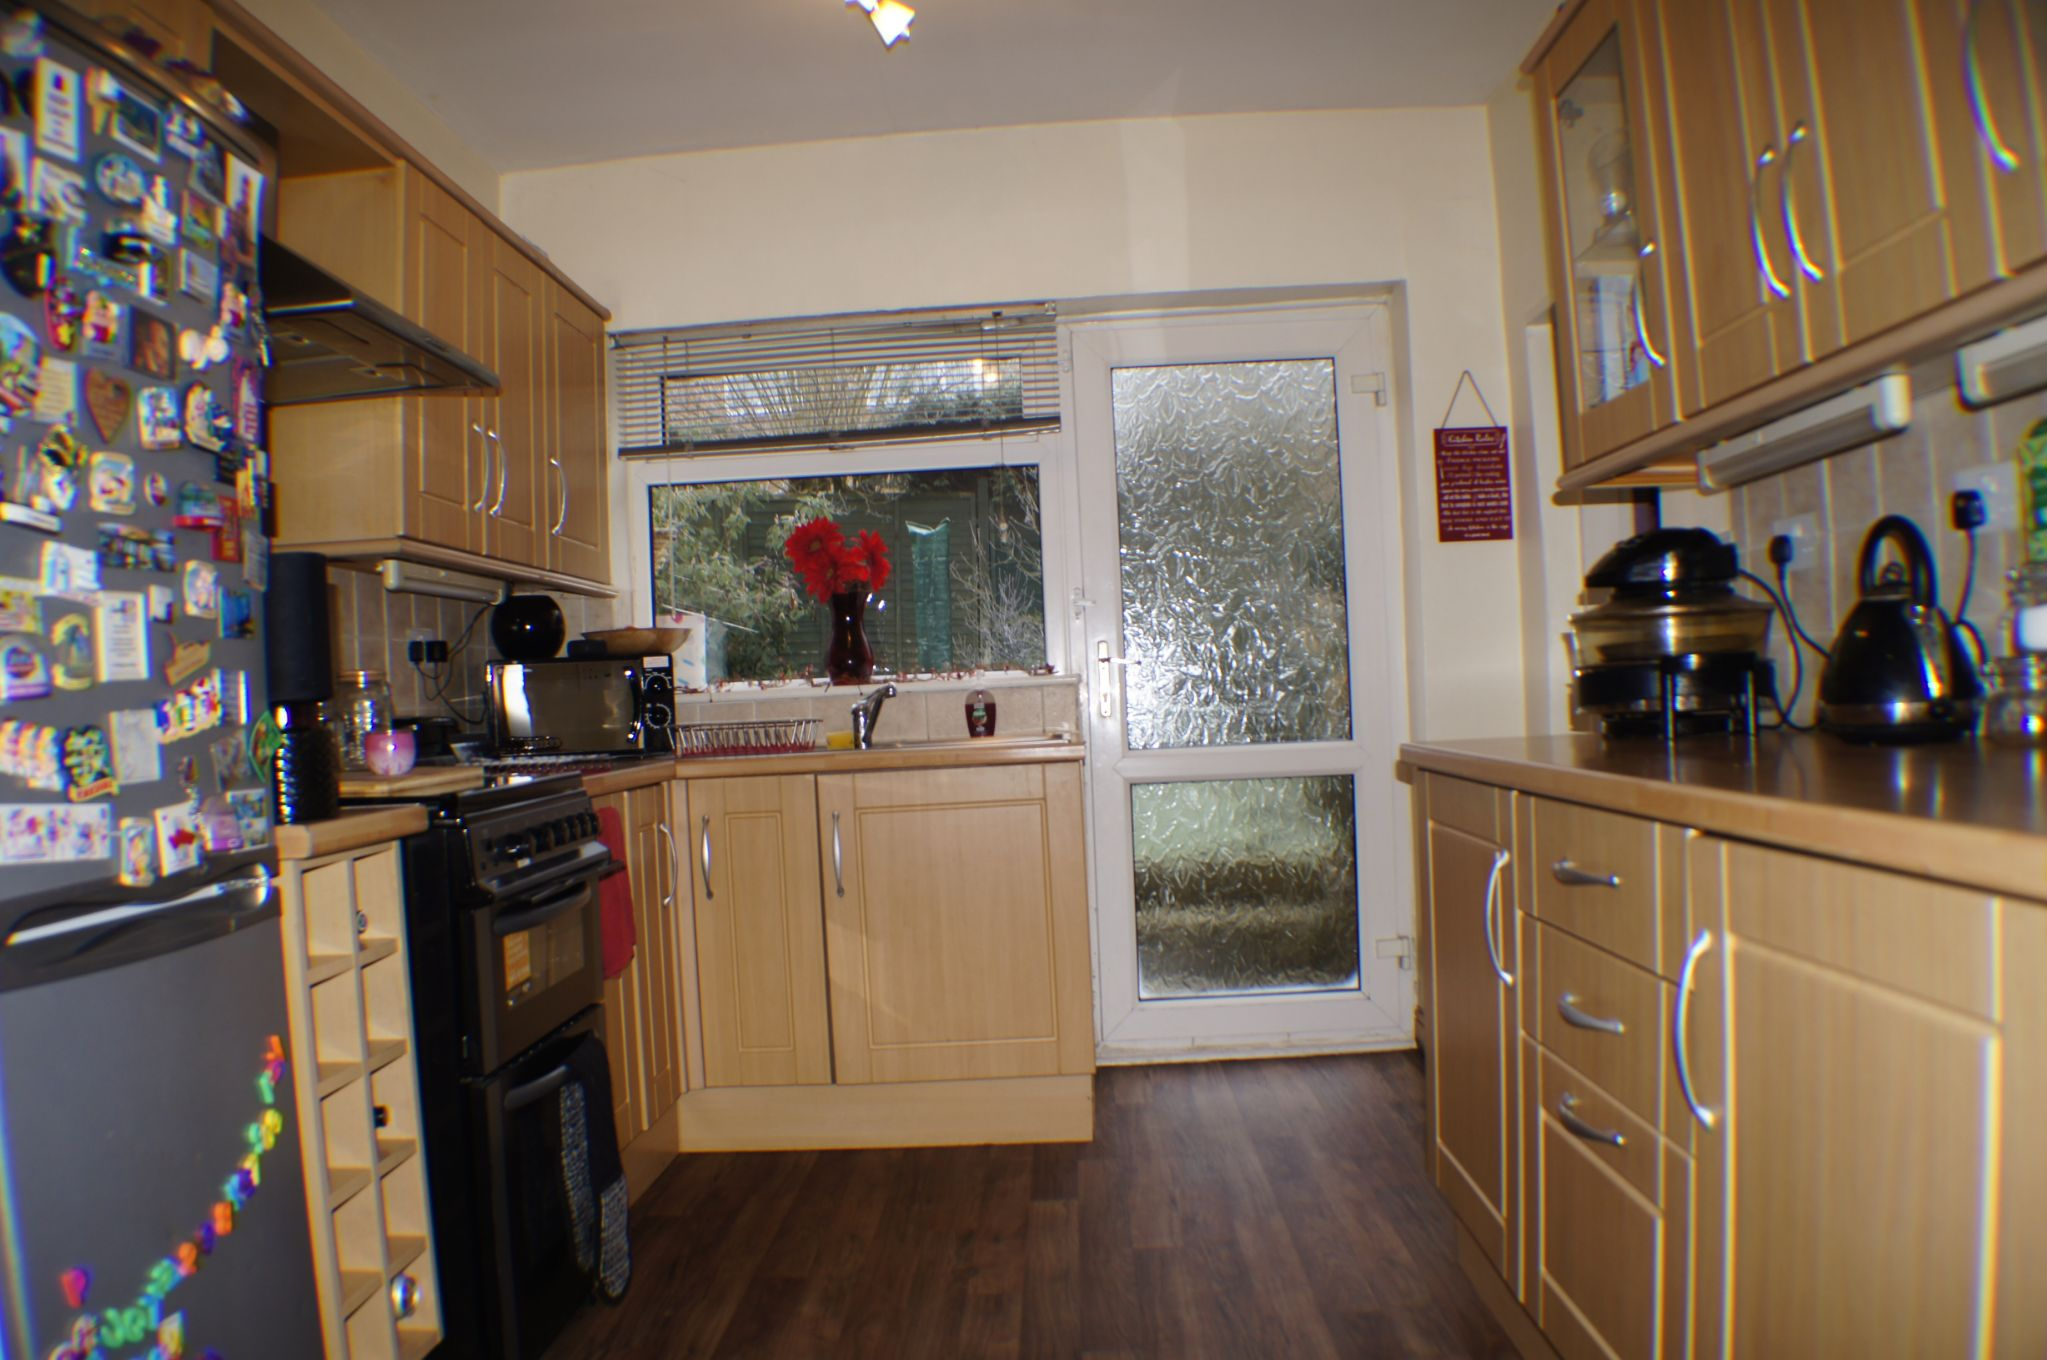 3 bedroom detached house in Bradford - Photograph 6.